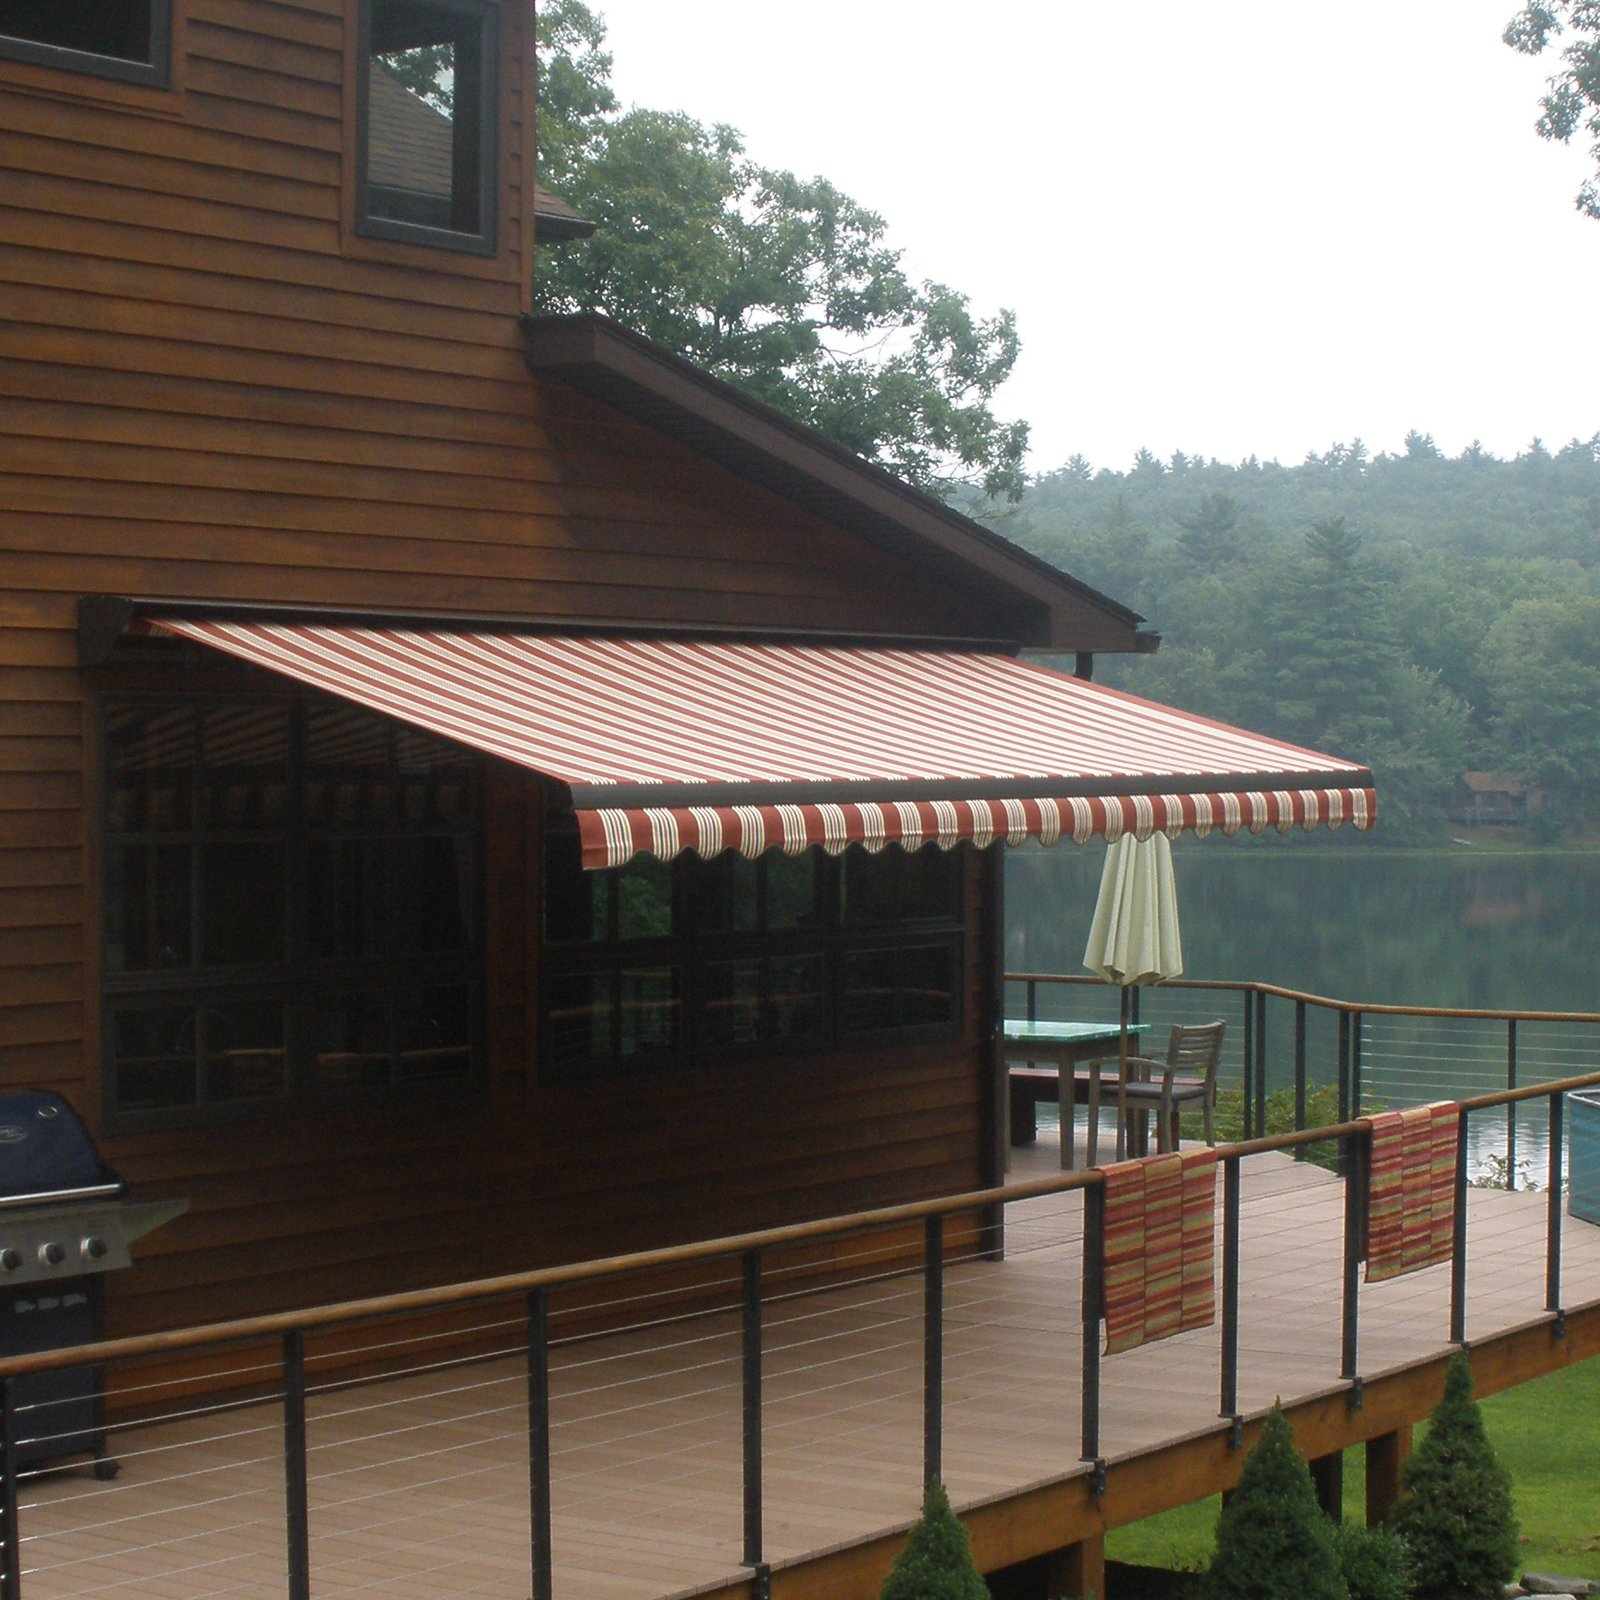 SunStopper Sun Haven 18 X 8 Ft. Motorized Retractable Awning